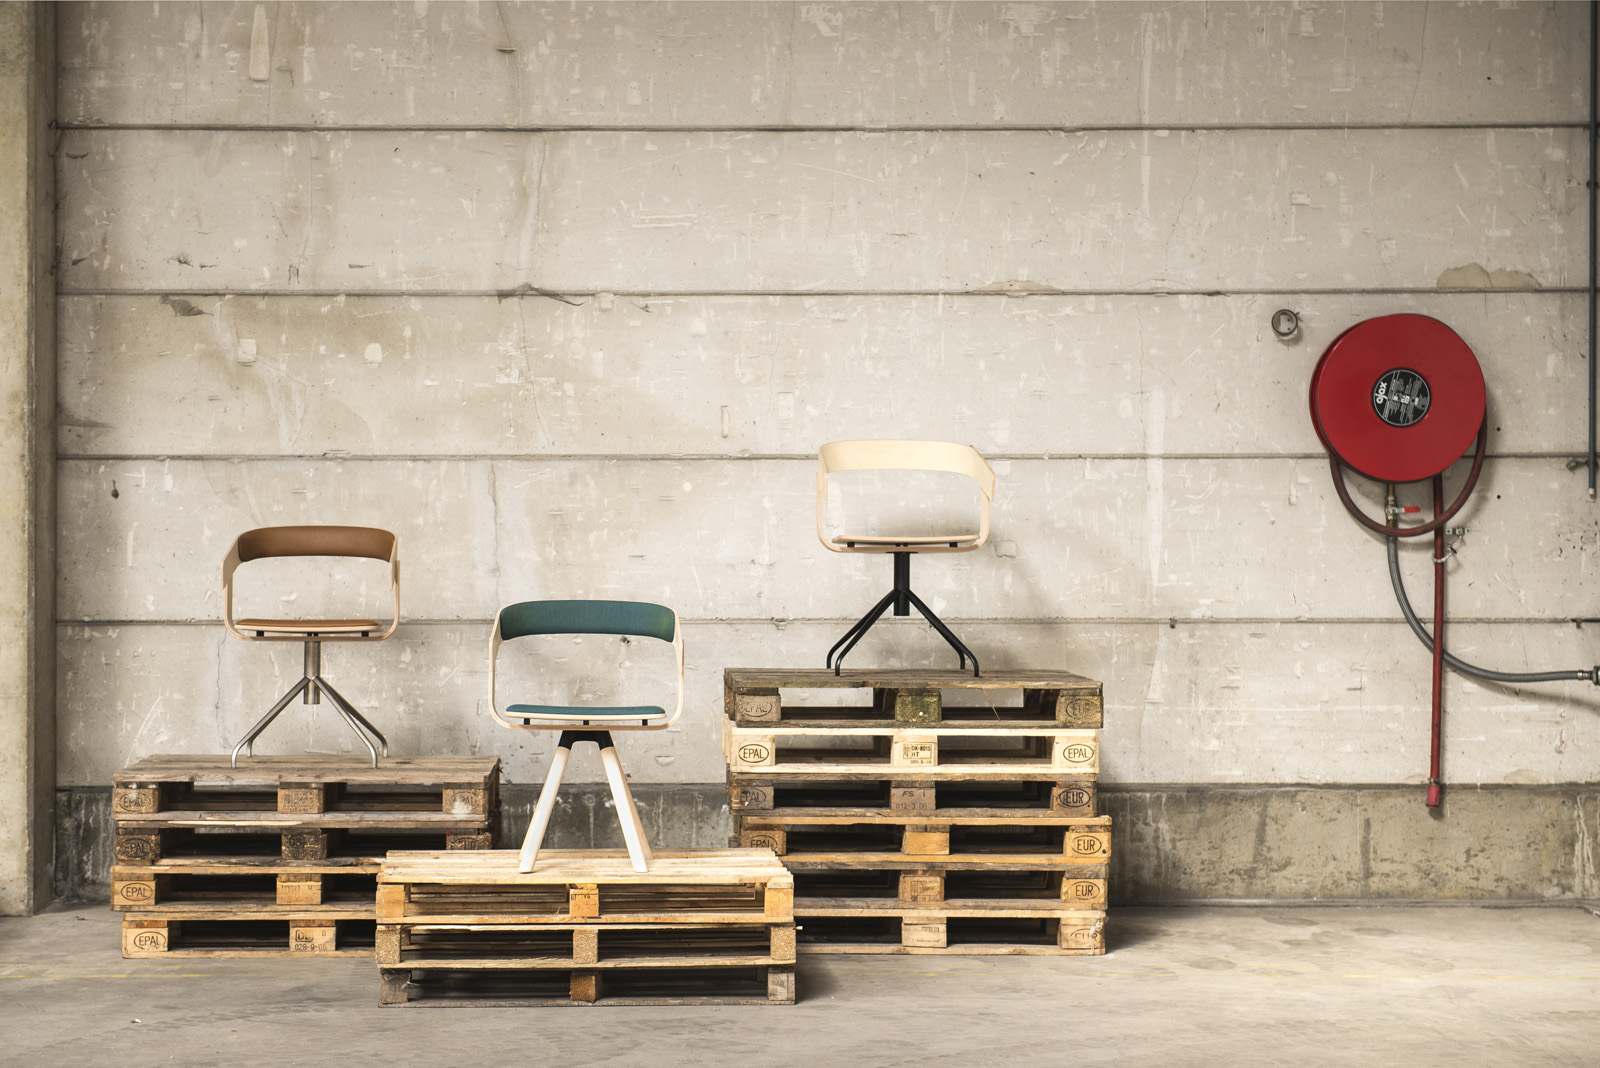 Buzzifloat Chairs by Alain Gilles